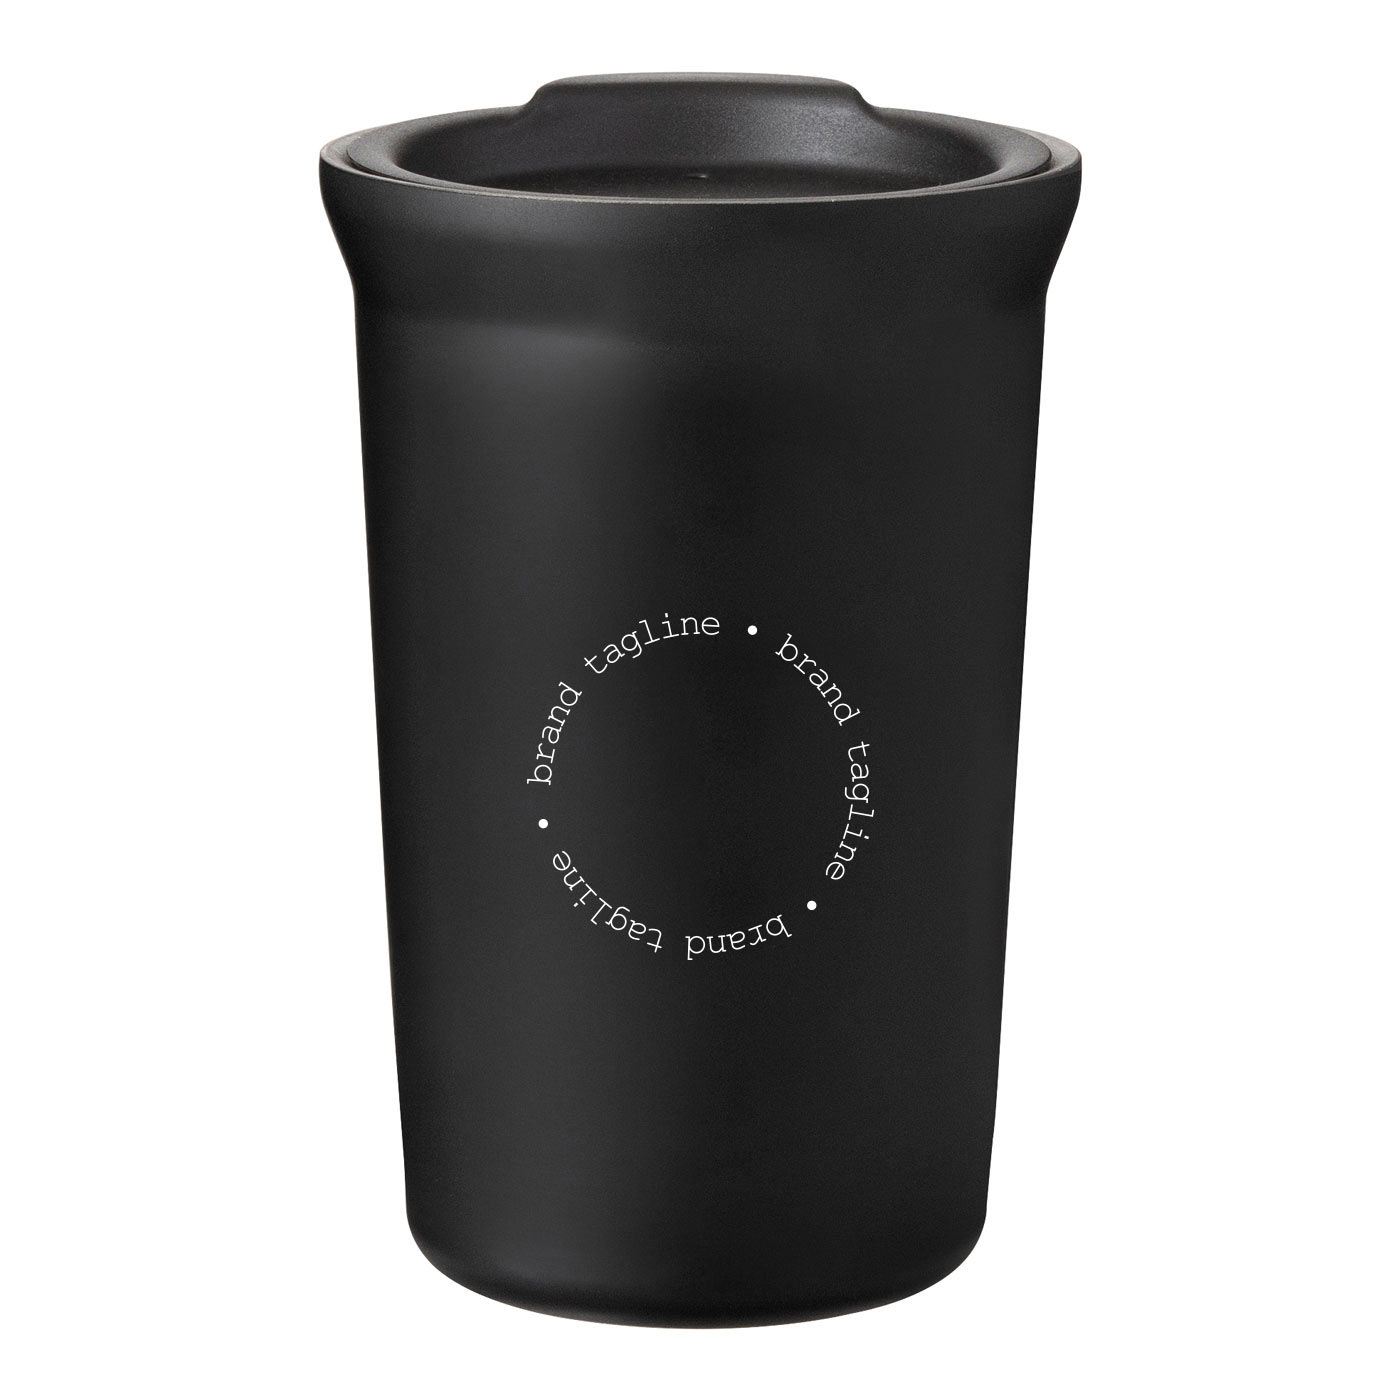 239660 commuter tumbler 12 oz one color imprint